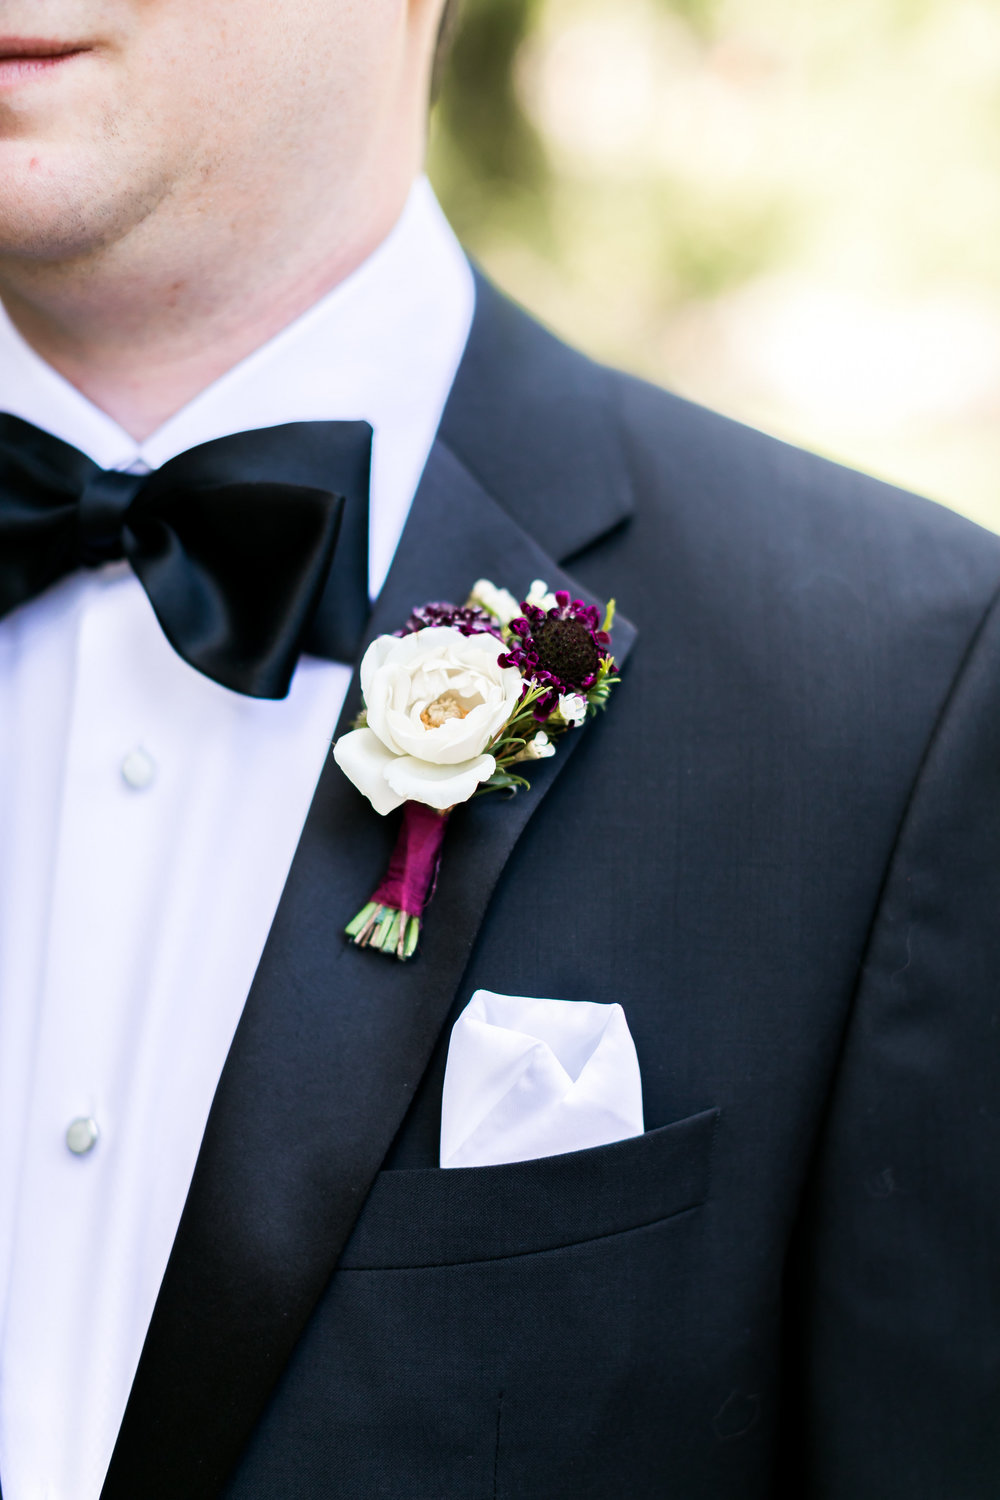 Boutonniere - Burgundy and white rose and scabiosa